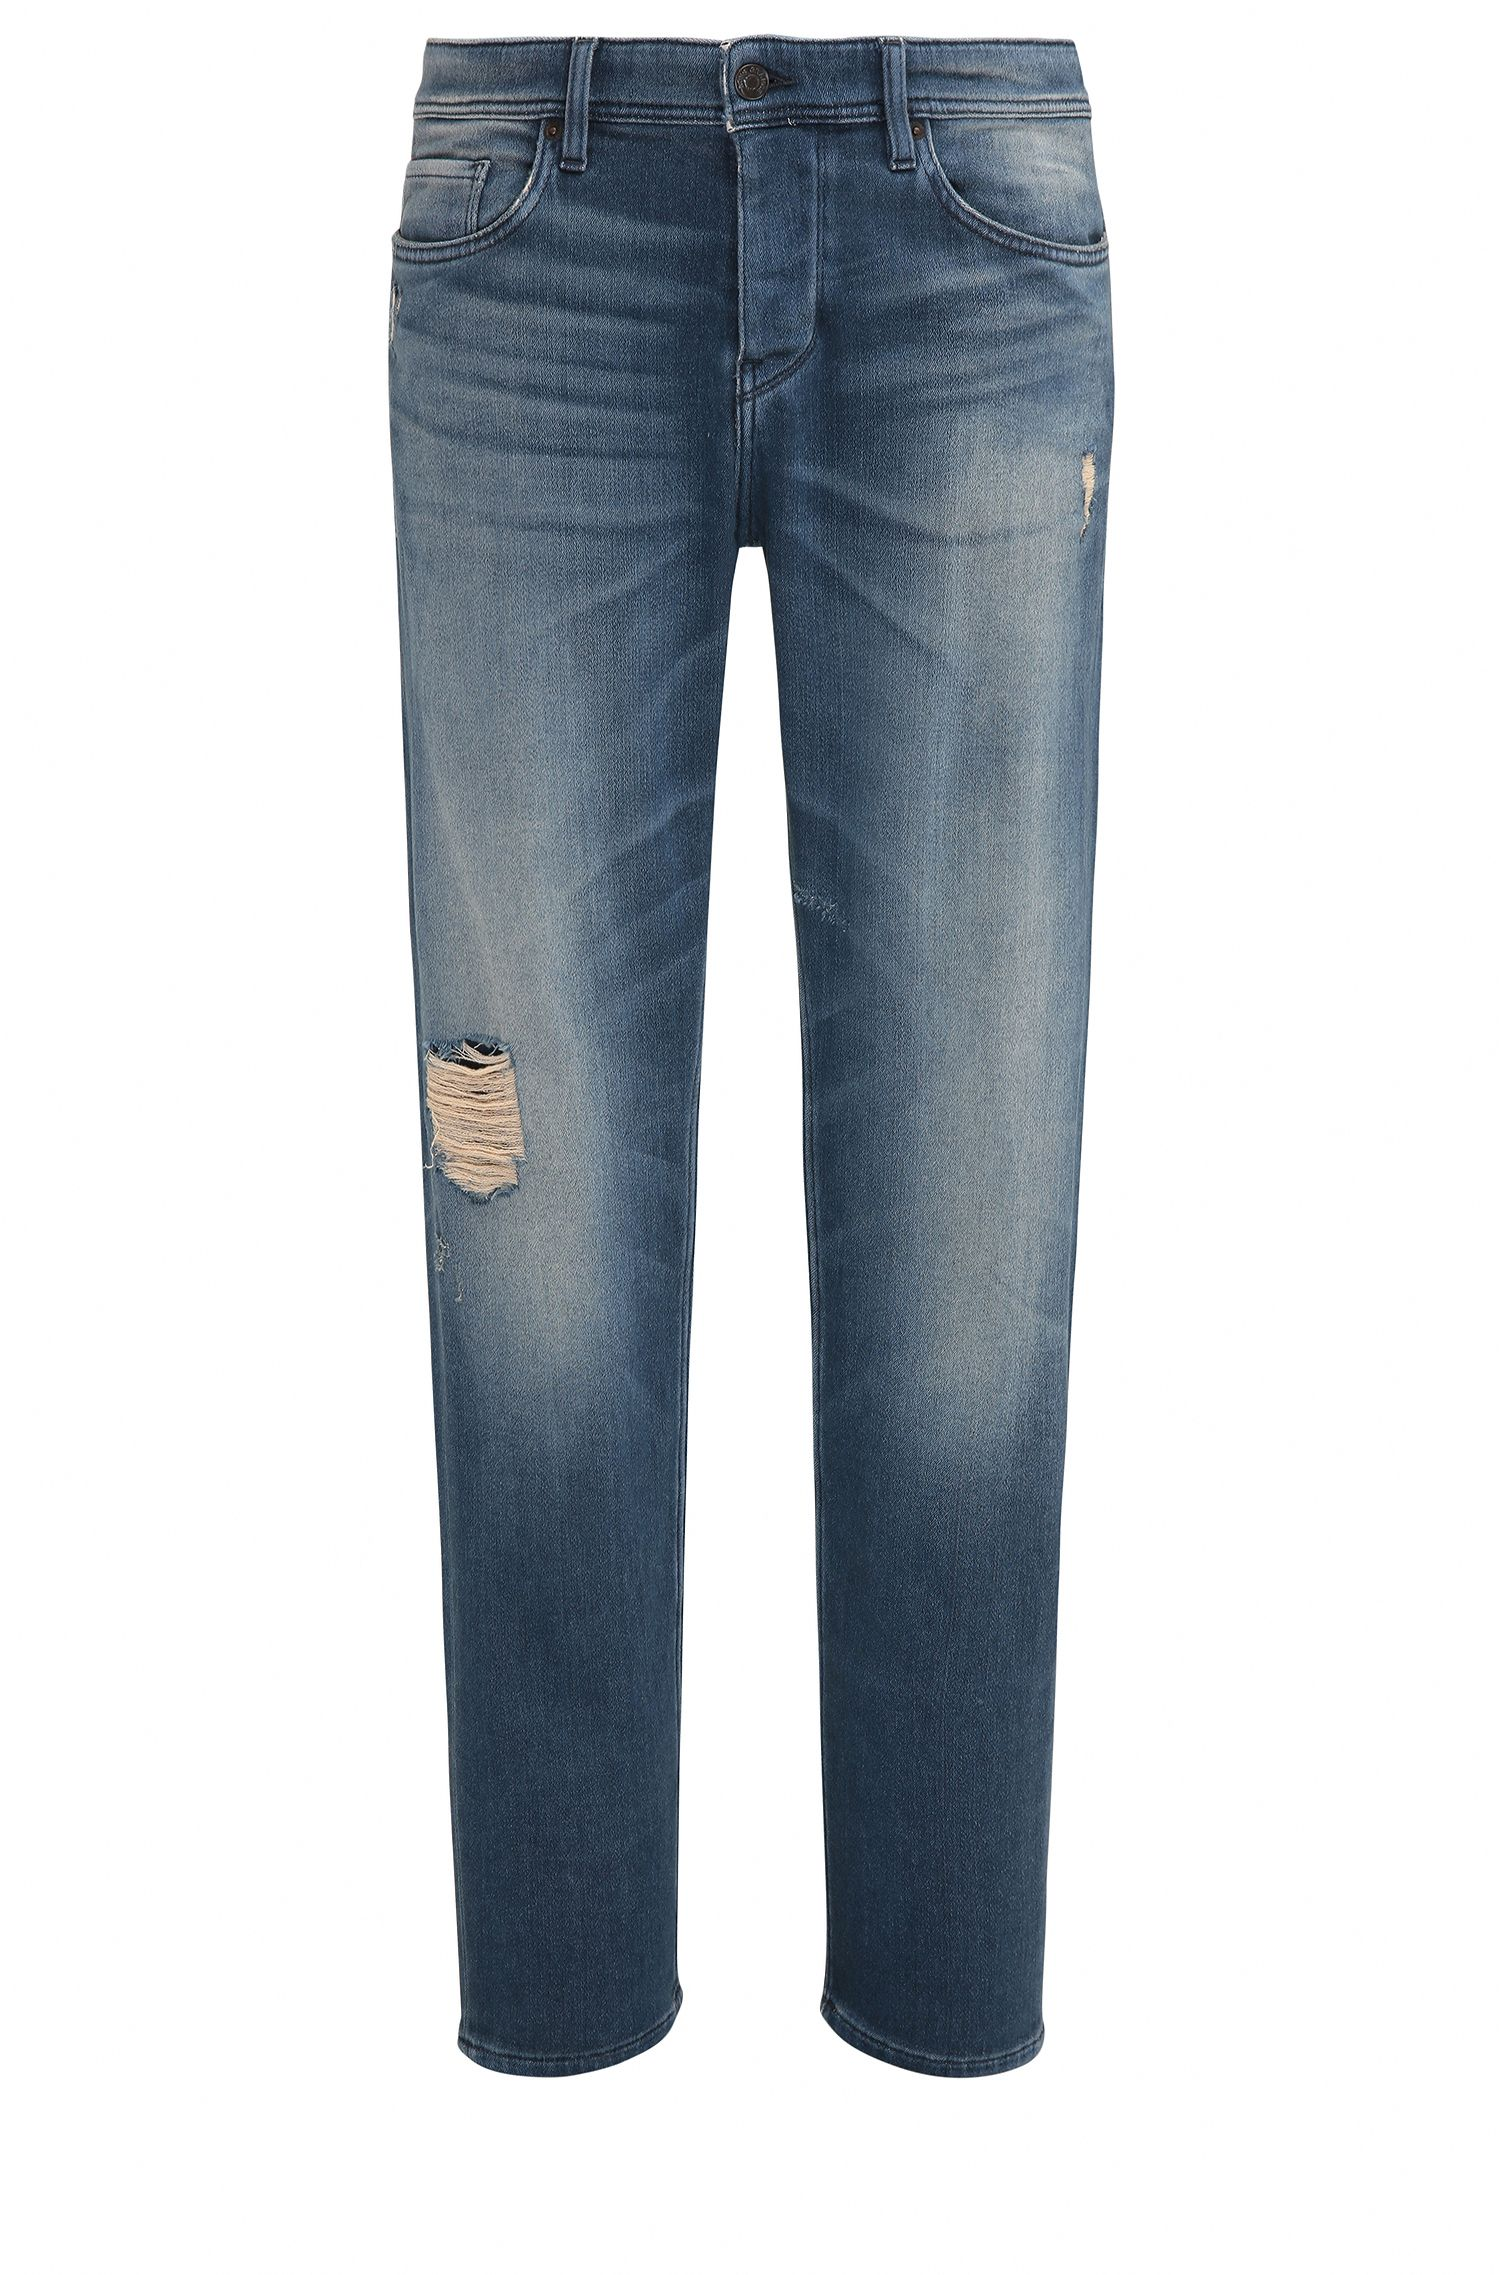 Distressed Stretch Cotton Jeans, Taper Fit | Orange90